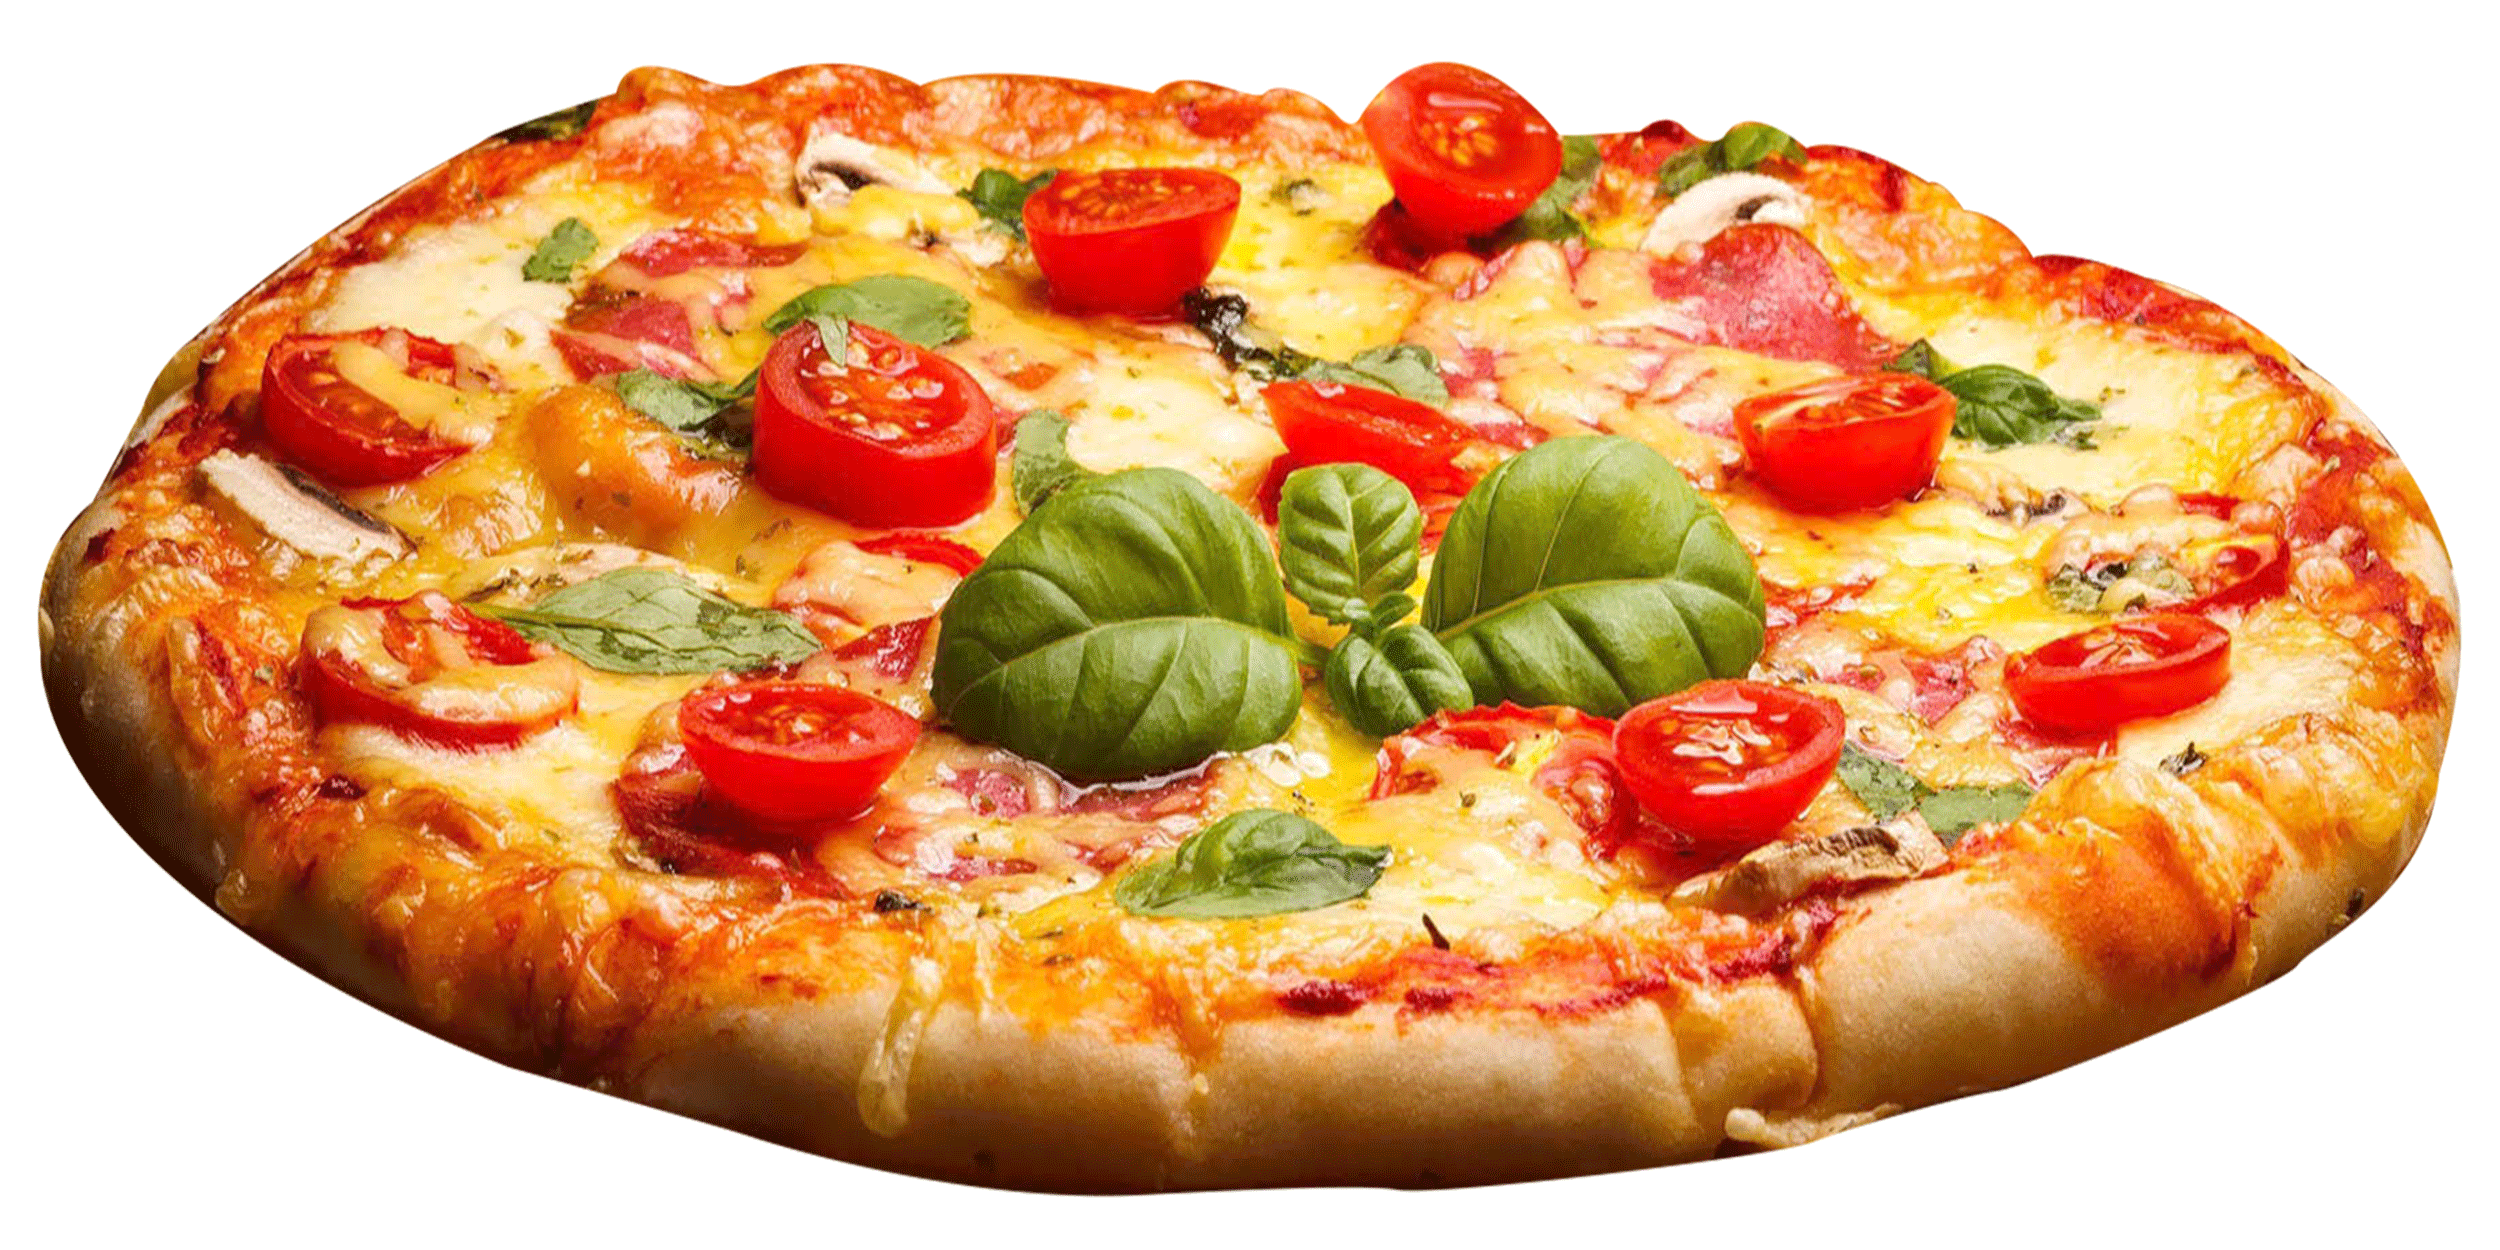 Pizza Free Png Image Png 2500 1250 Good Pizza Pizza Wallpaper Zucchini Pizza Crust